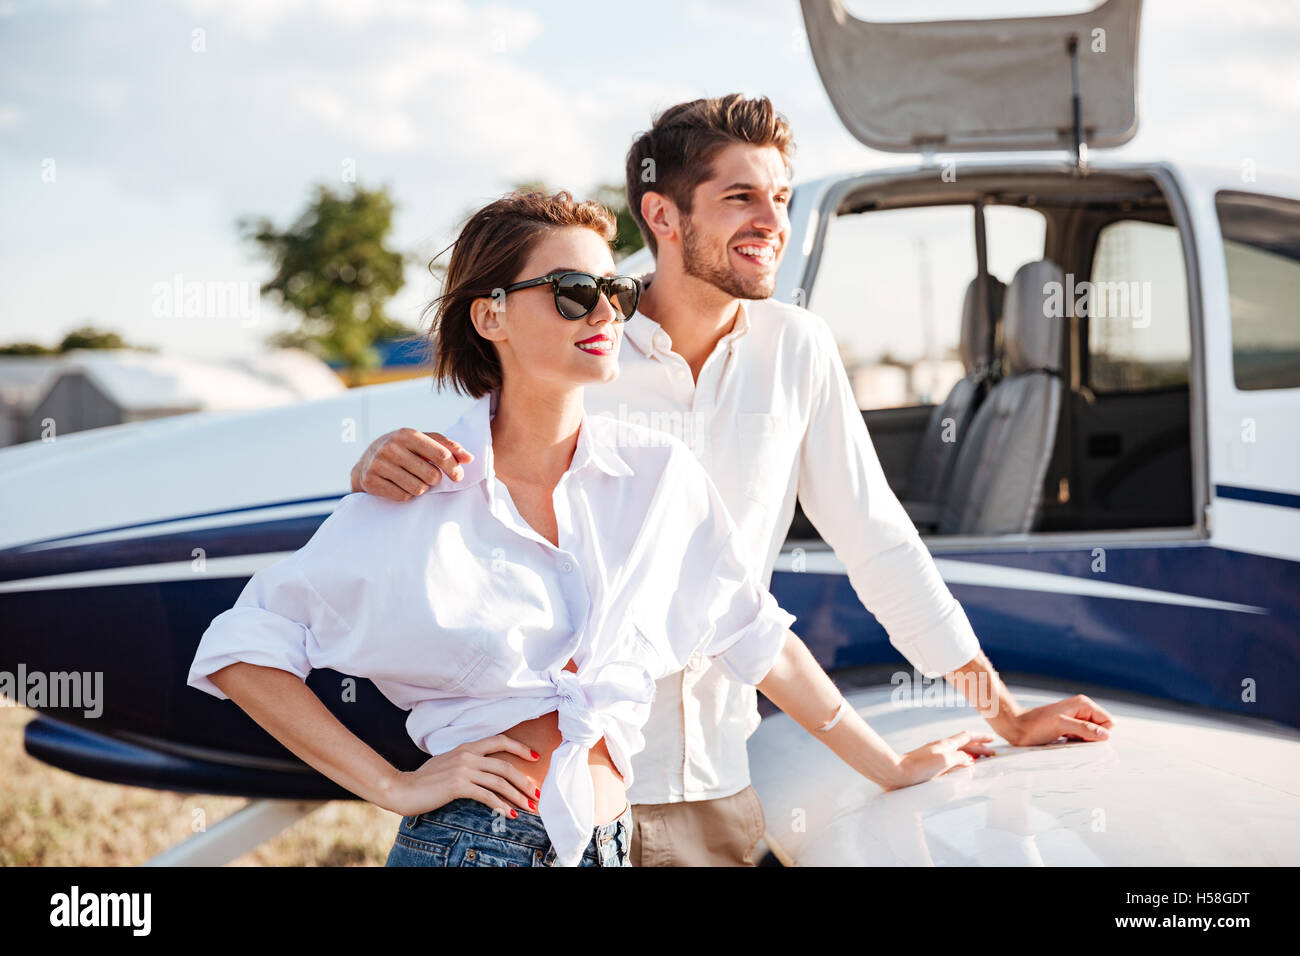 Portrait of beautiful young couple standing near small private aircraft - Stock Image